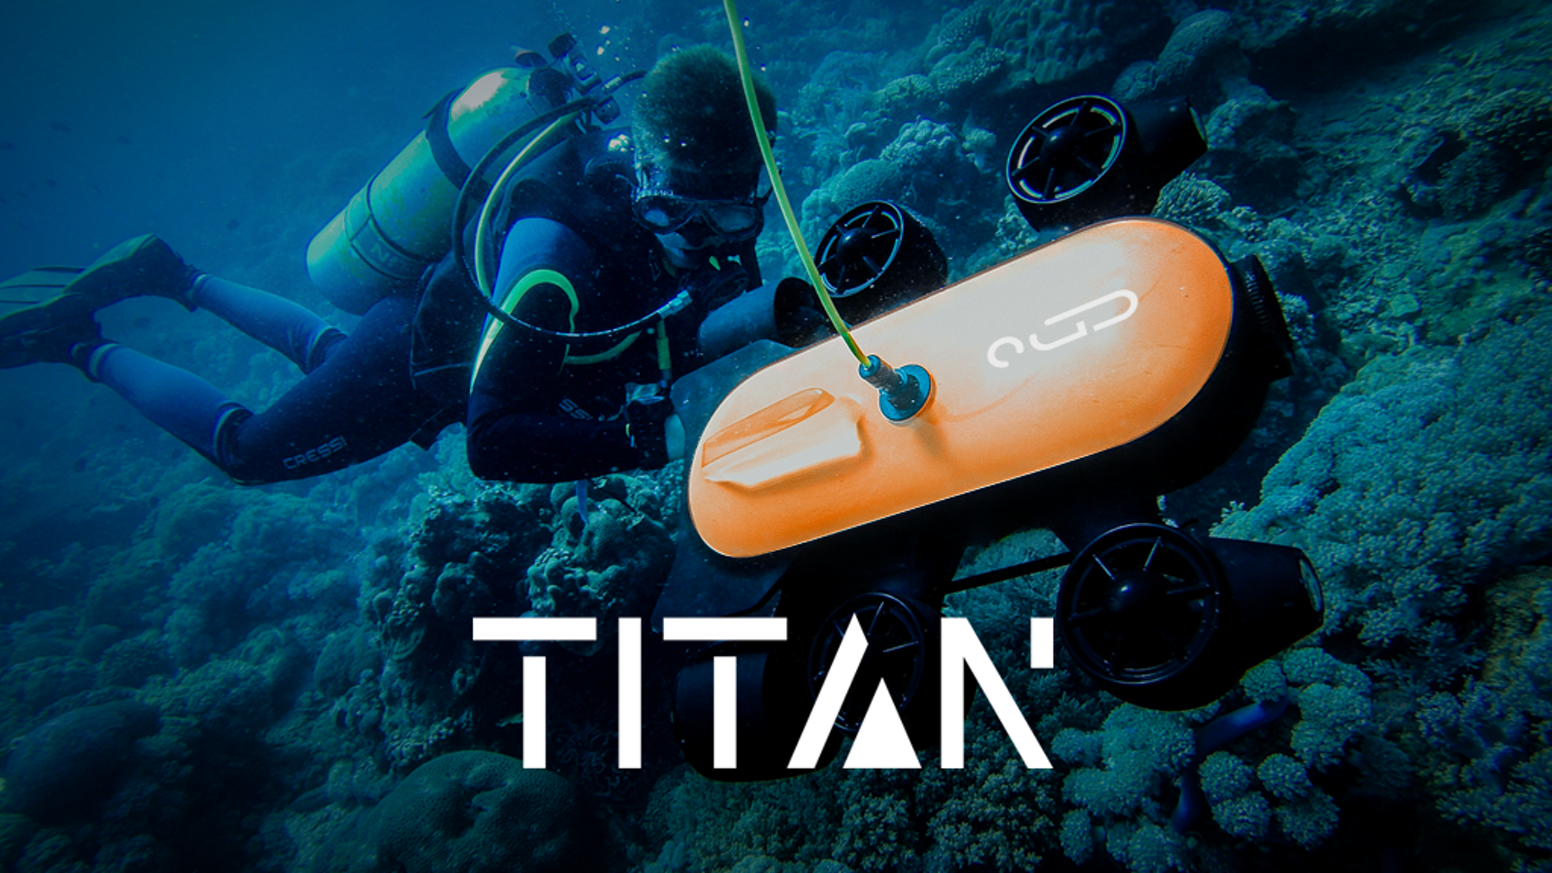 With diving range of up to 150m and 4k UHD camera, Titan makes remote underwater exploration fun, easy, and accessible.